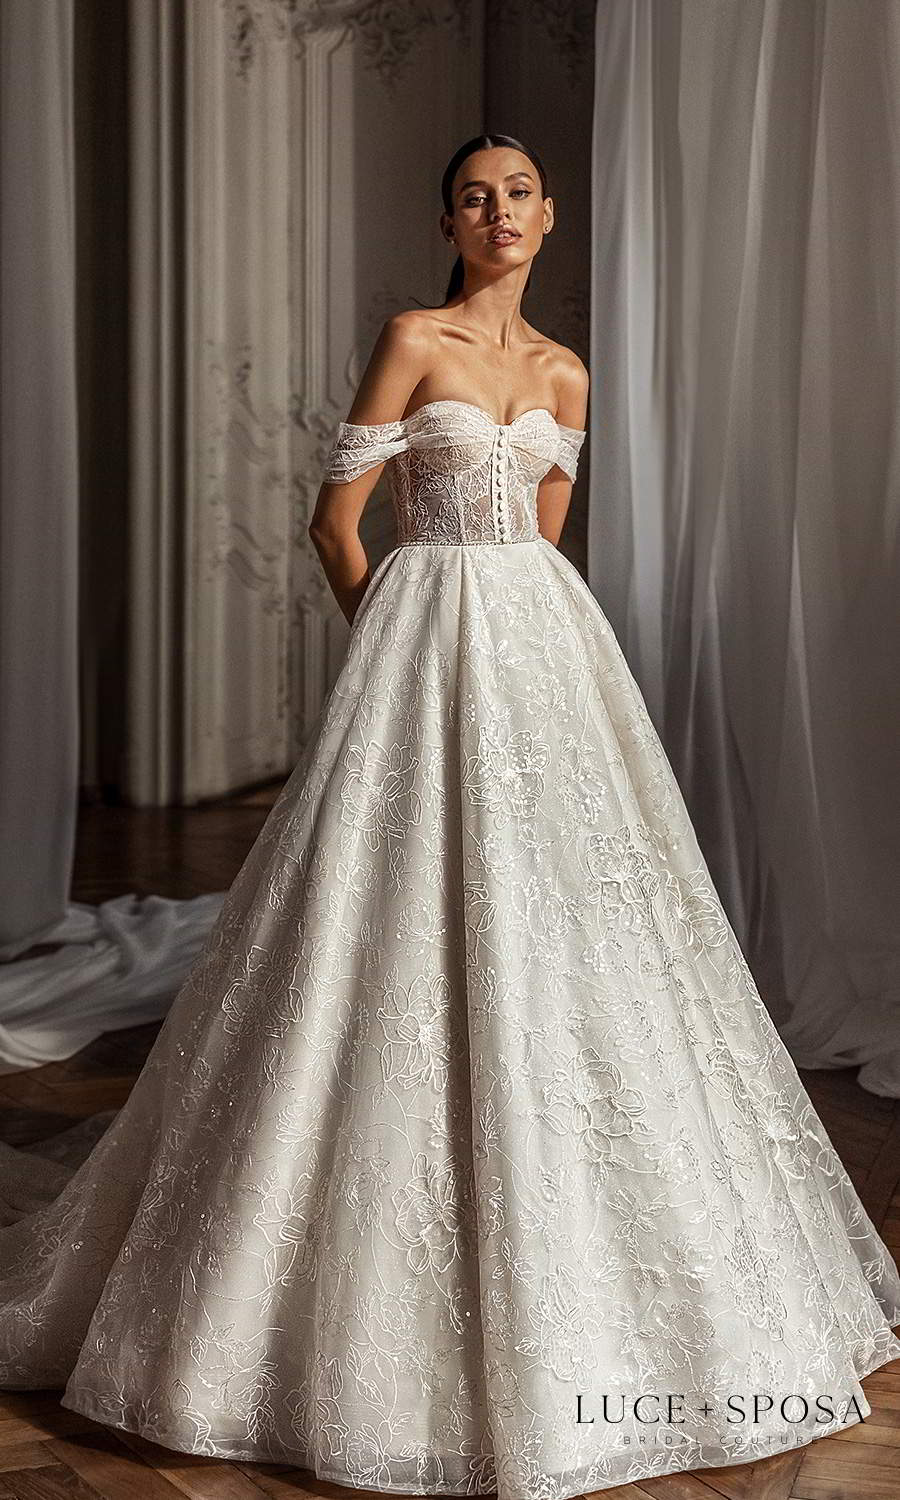 luce sposa 2021 shades of couture bridal off shoulder straps sweetheart neckline fully embellished a line ball gown wedding dress chapel train (olivia) mv